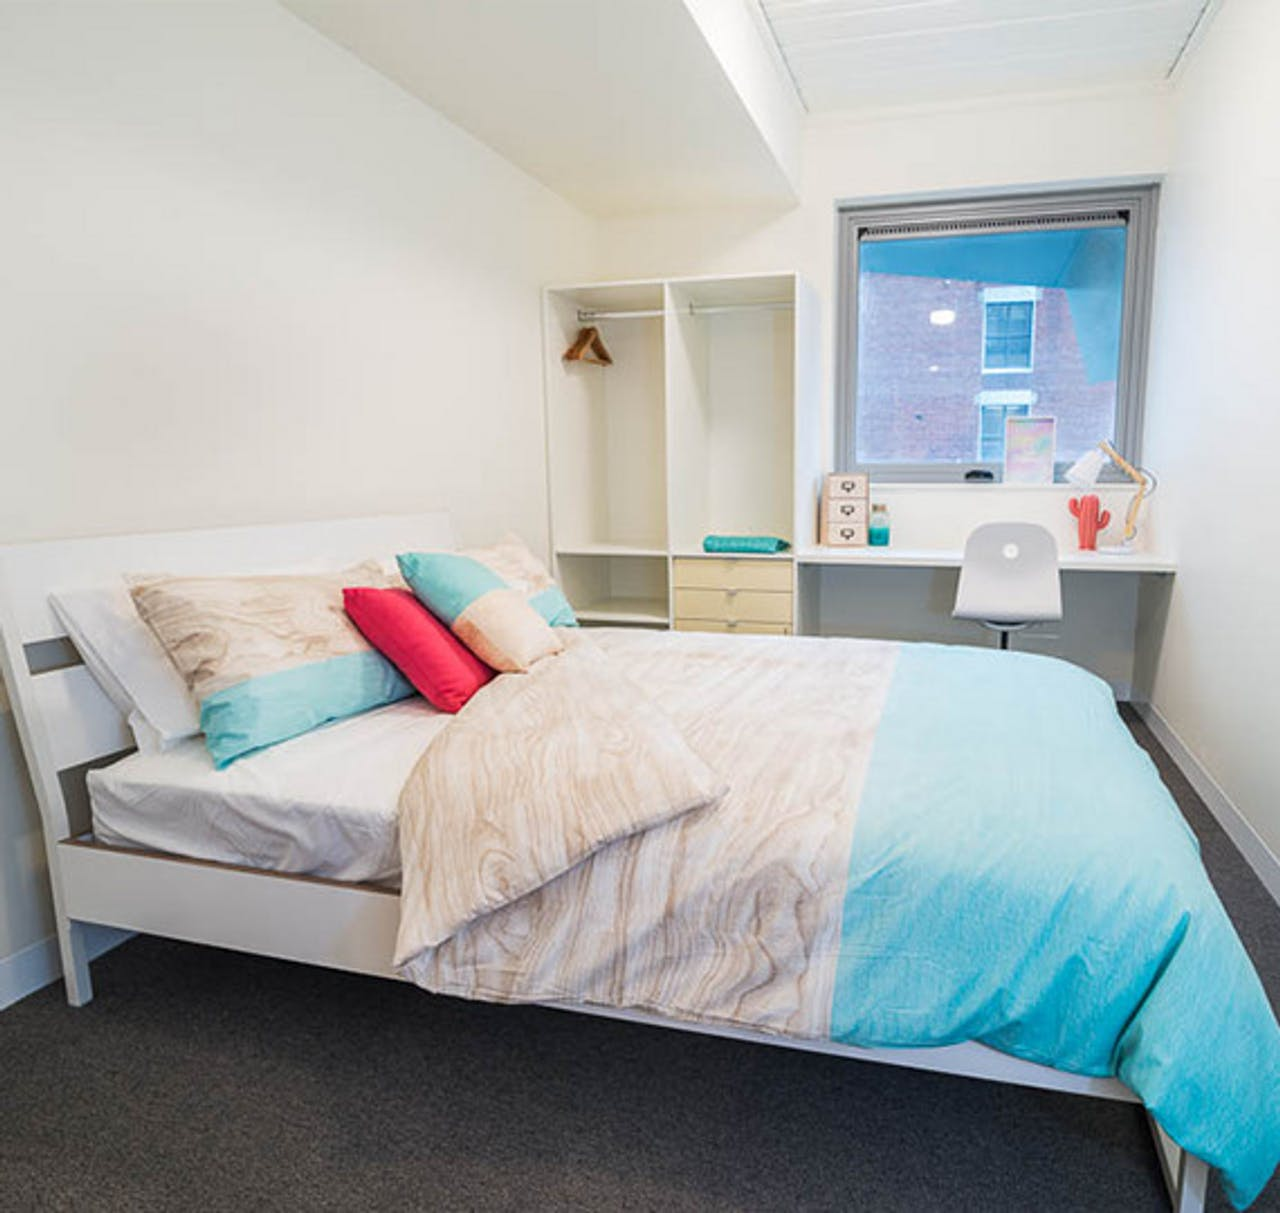 Best Student Accommodation Near The University Of Melbourne